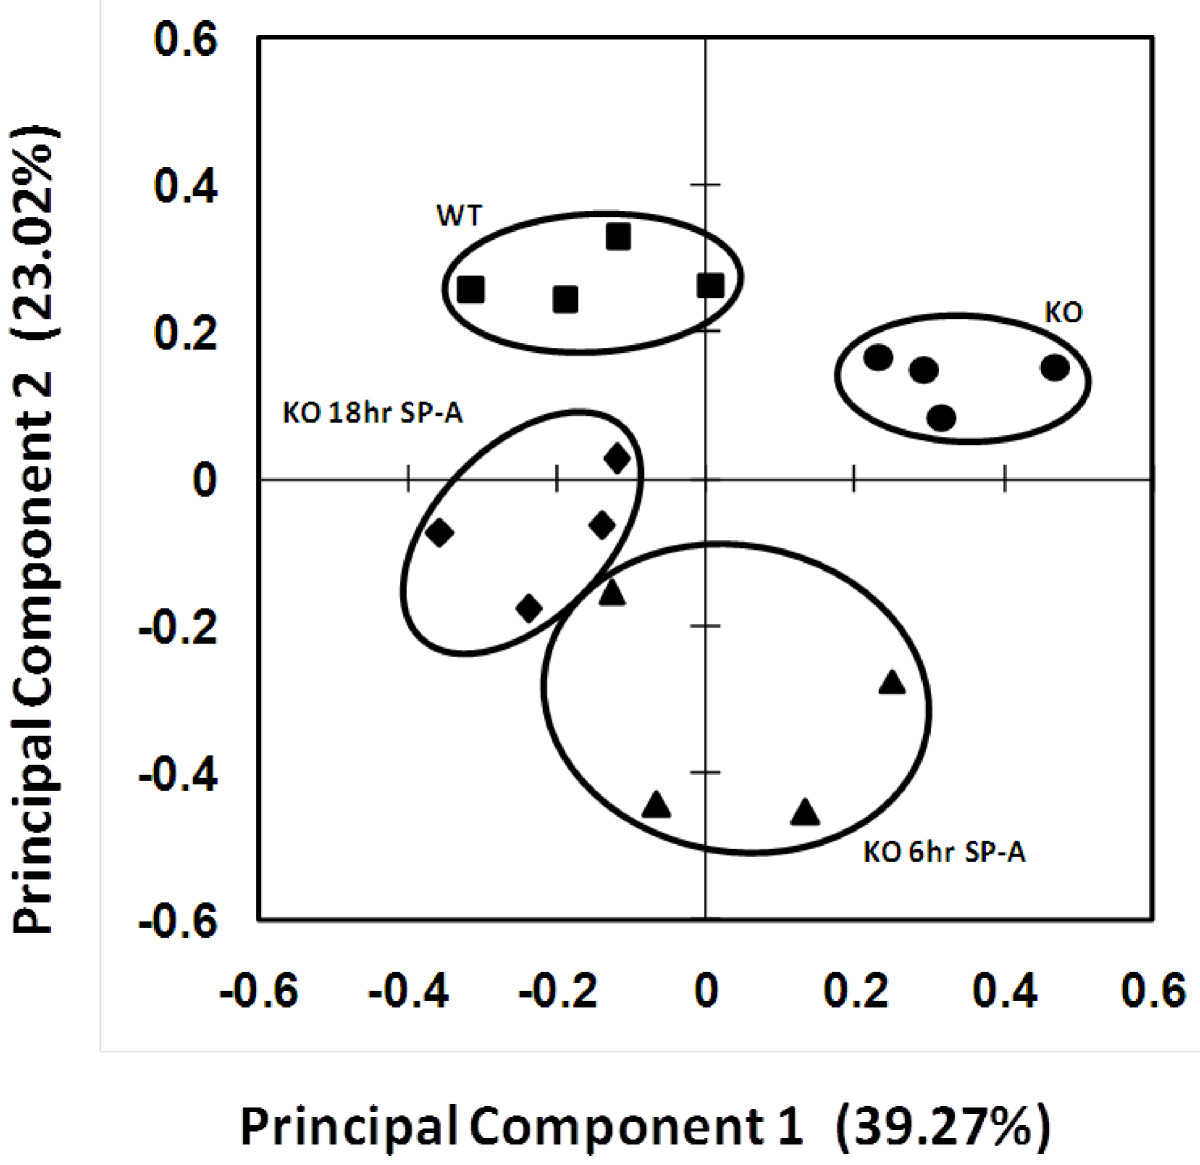 http://static-content.springer.com/image/art%3A10.1186%2F1477-5956-9-67/MediaObjects/12953_2011_Article_307_Fig2_HTML.jpg